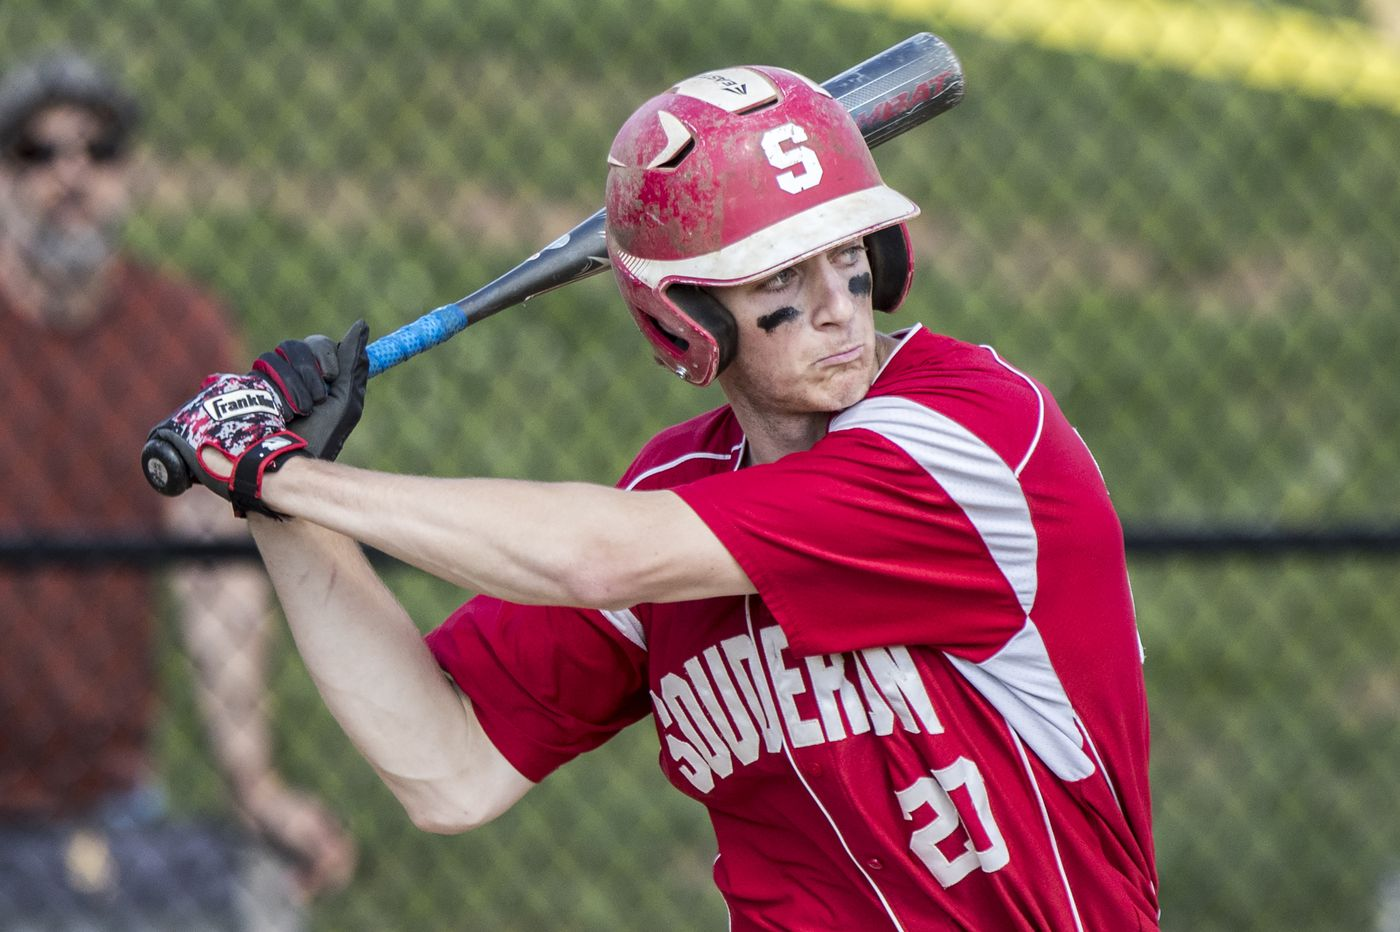 With Souderton and Central Bucks South, it's an all-Suburban One PIAA Class 6A baseball final